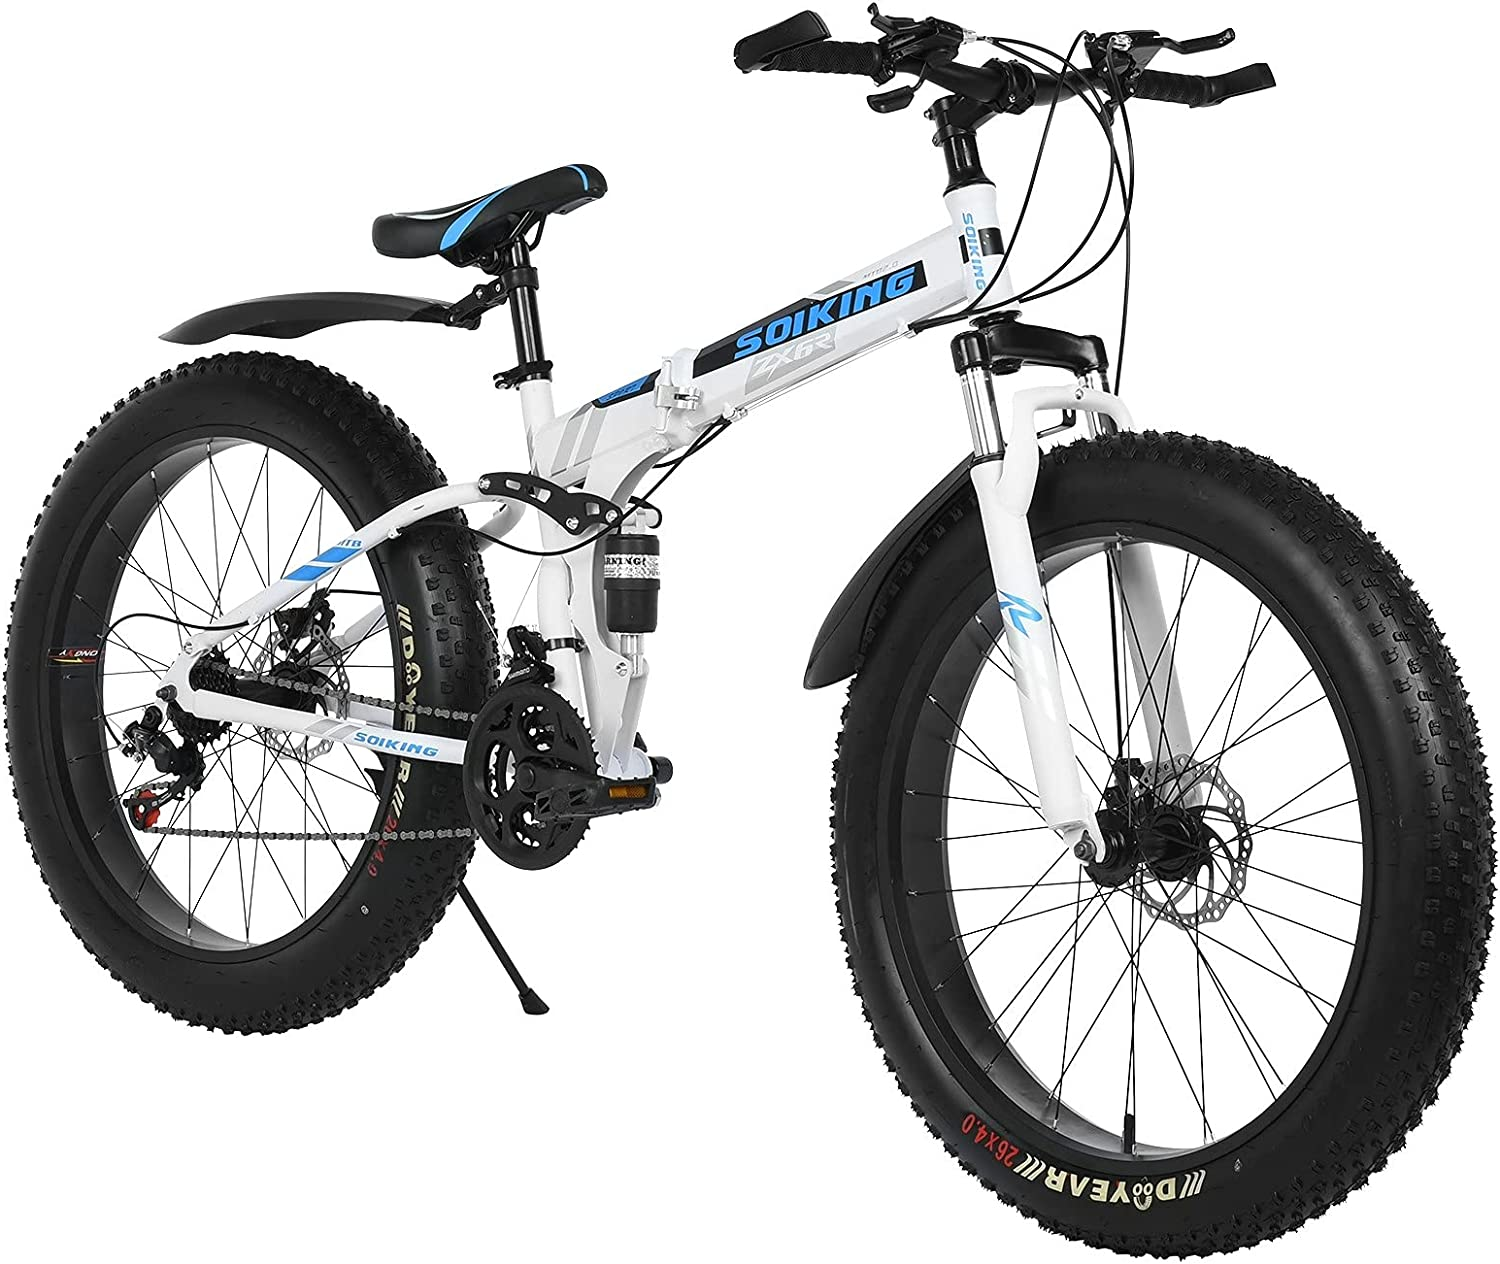 TOUNTLETS Fat Fresno Mall Tire Mountain Bike 26 Bicycle Inch 21-Sp Max 86% OFF Mens for